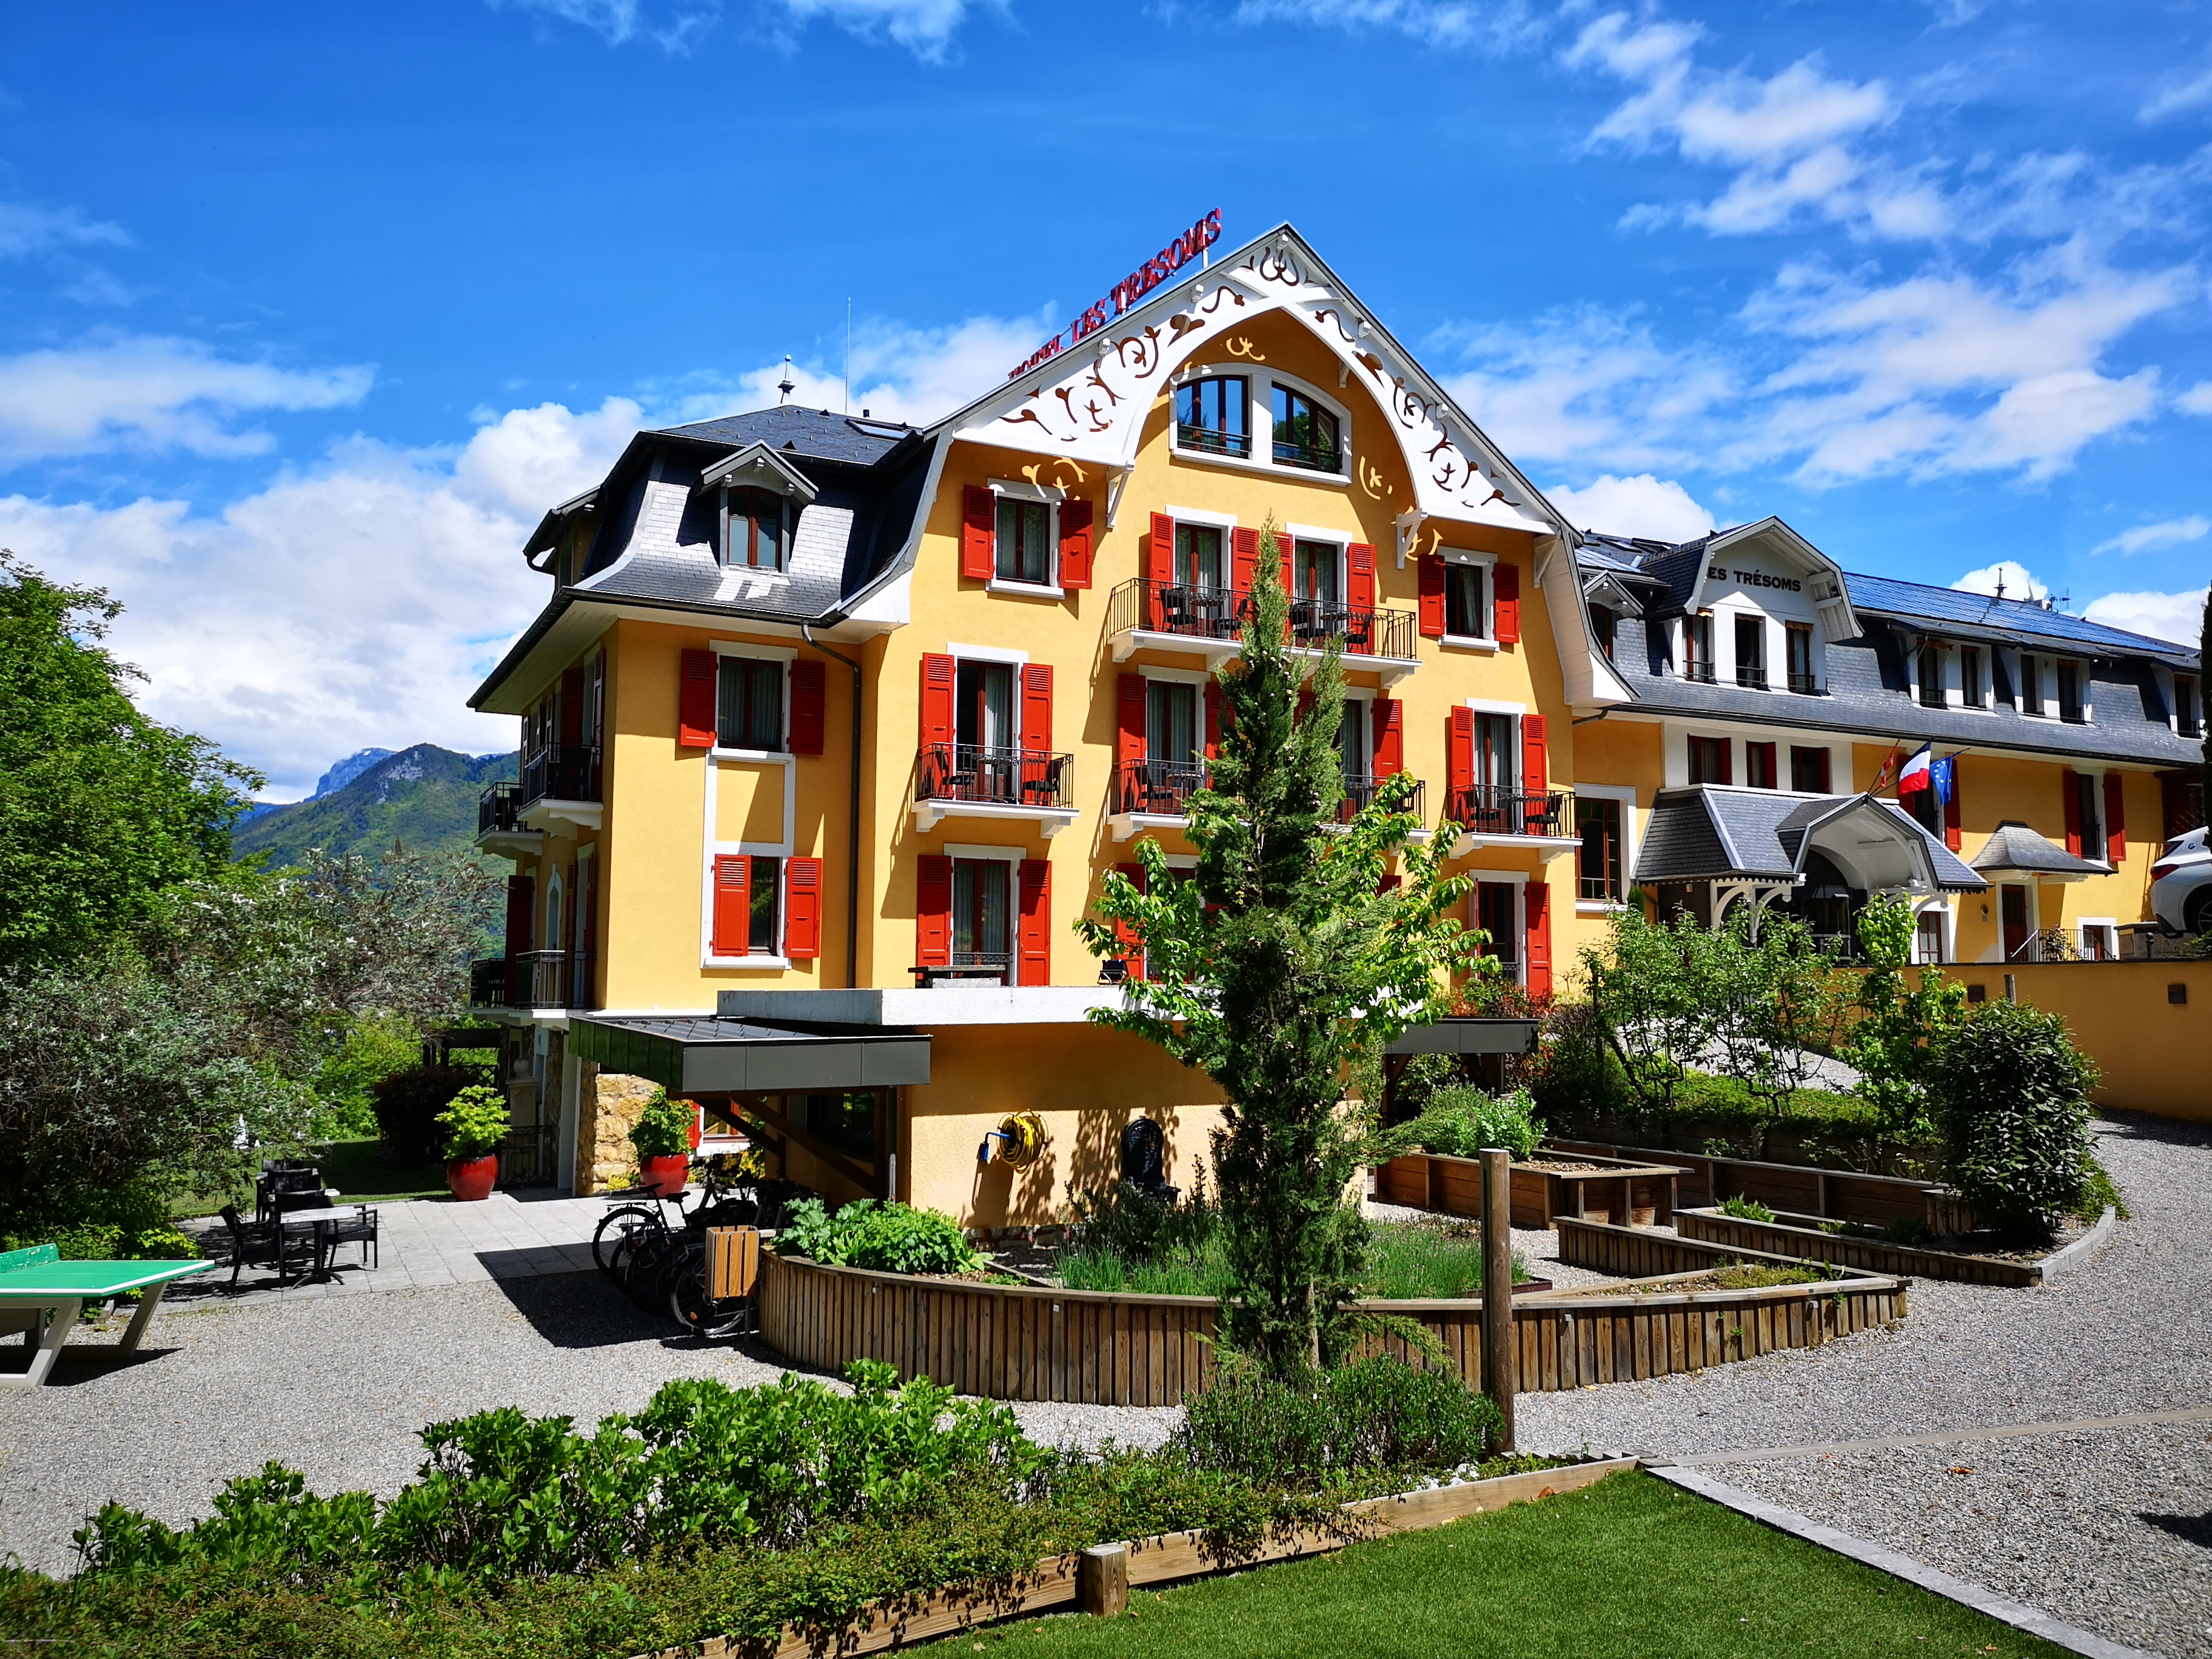 343/hotel/tresoms-hotel-panneaux-solaire-annecy.jpg